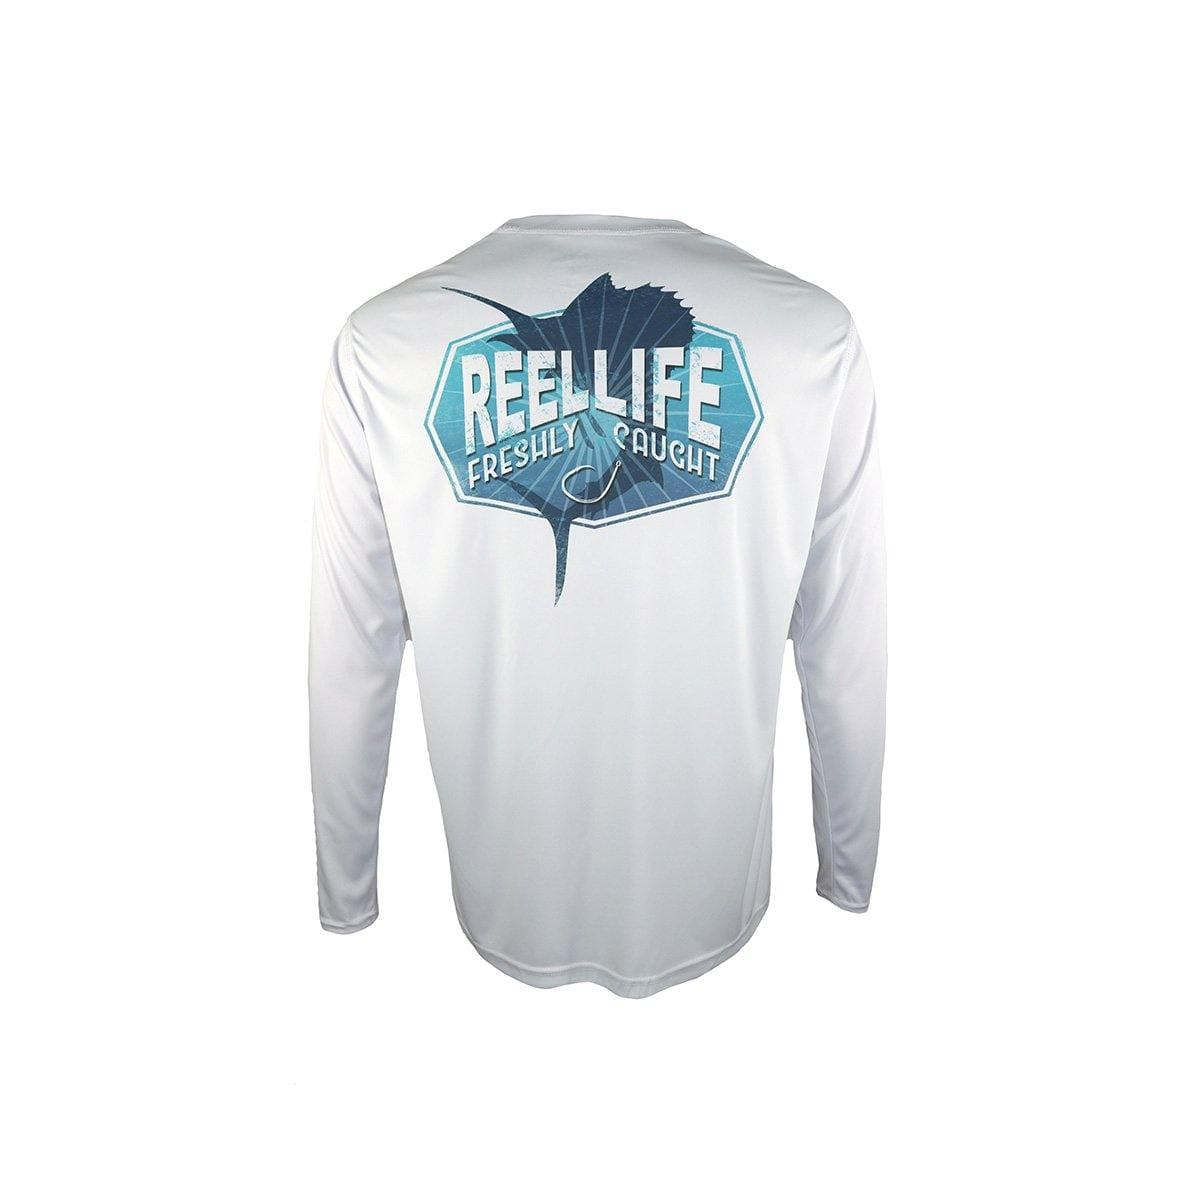 "Reel Life Men's Long Sleeve UV ""Freshly Caught Sailfish""- White"